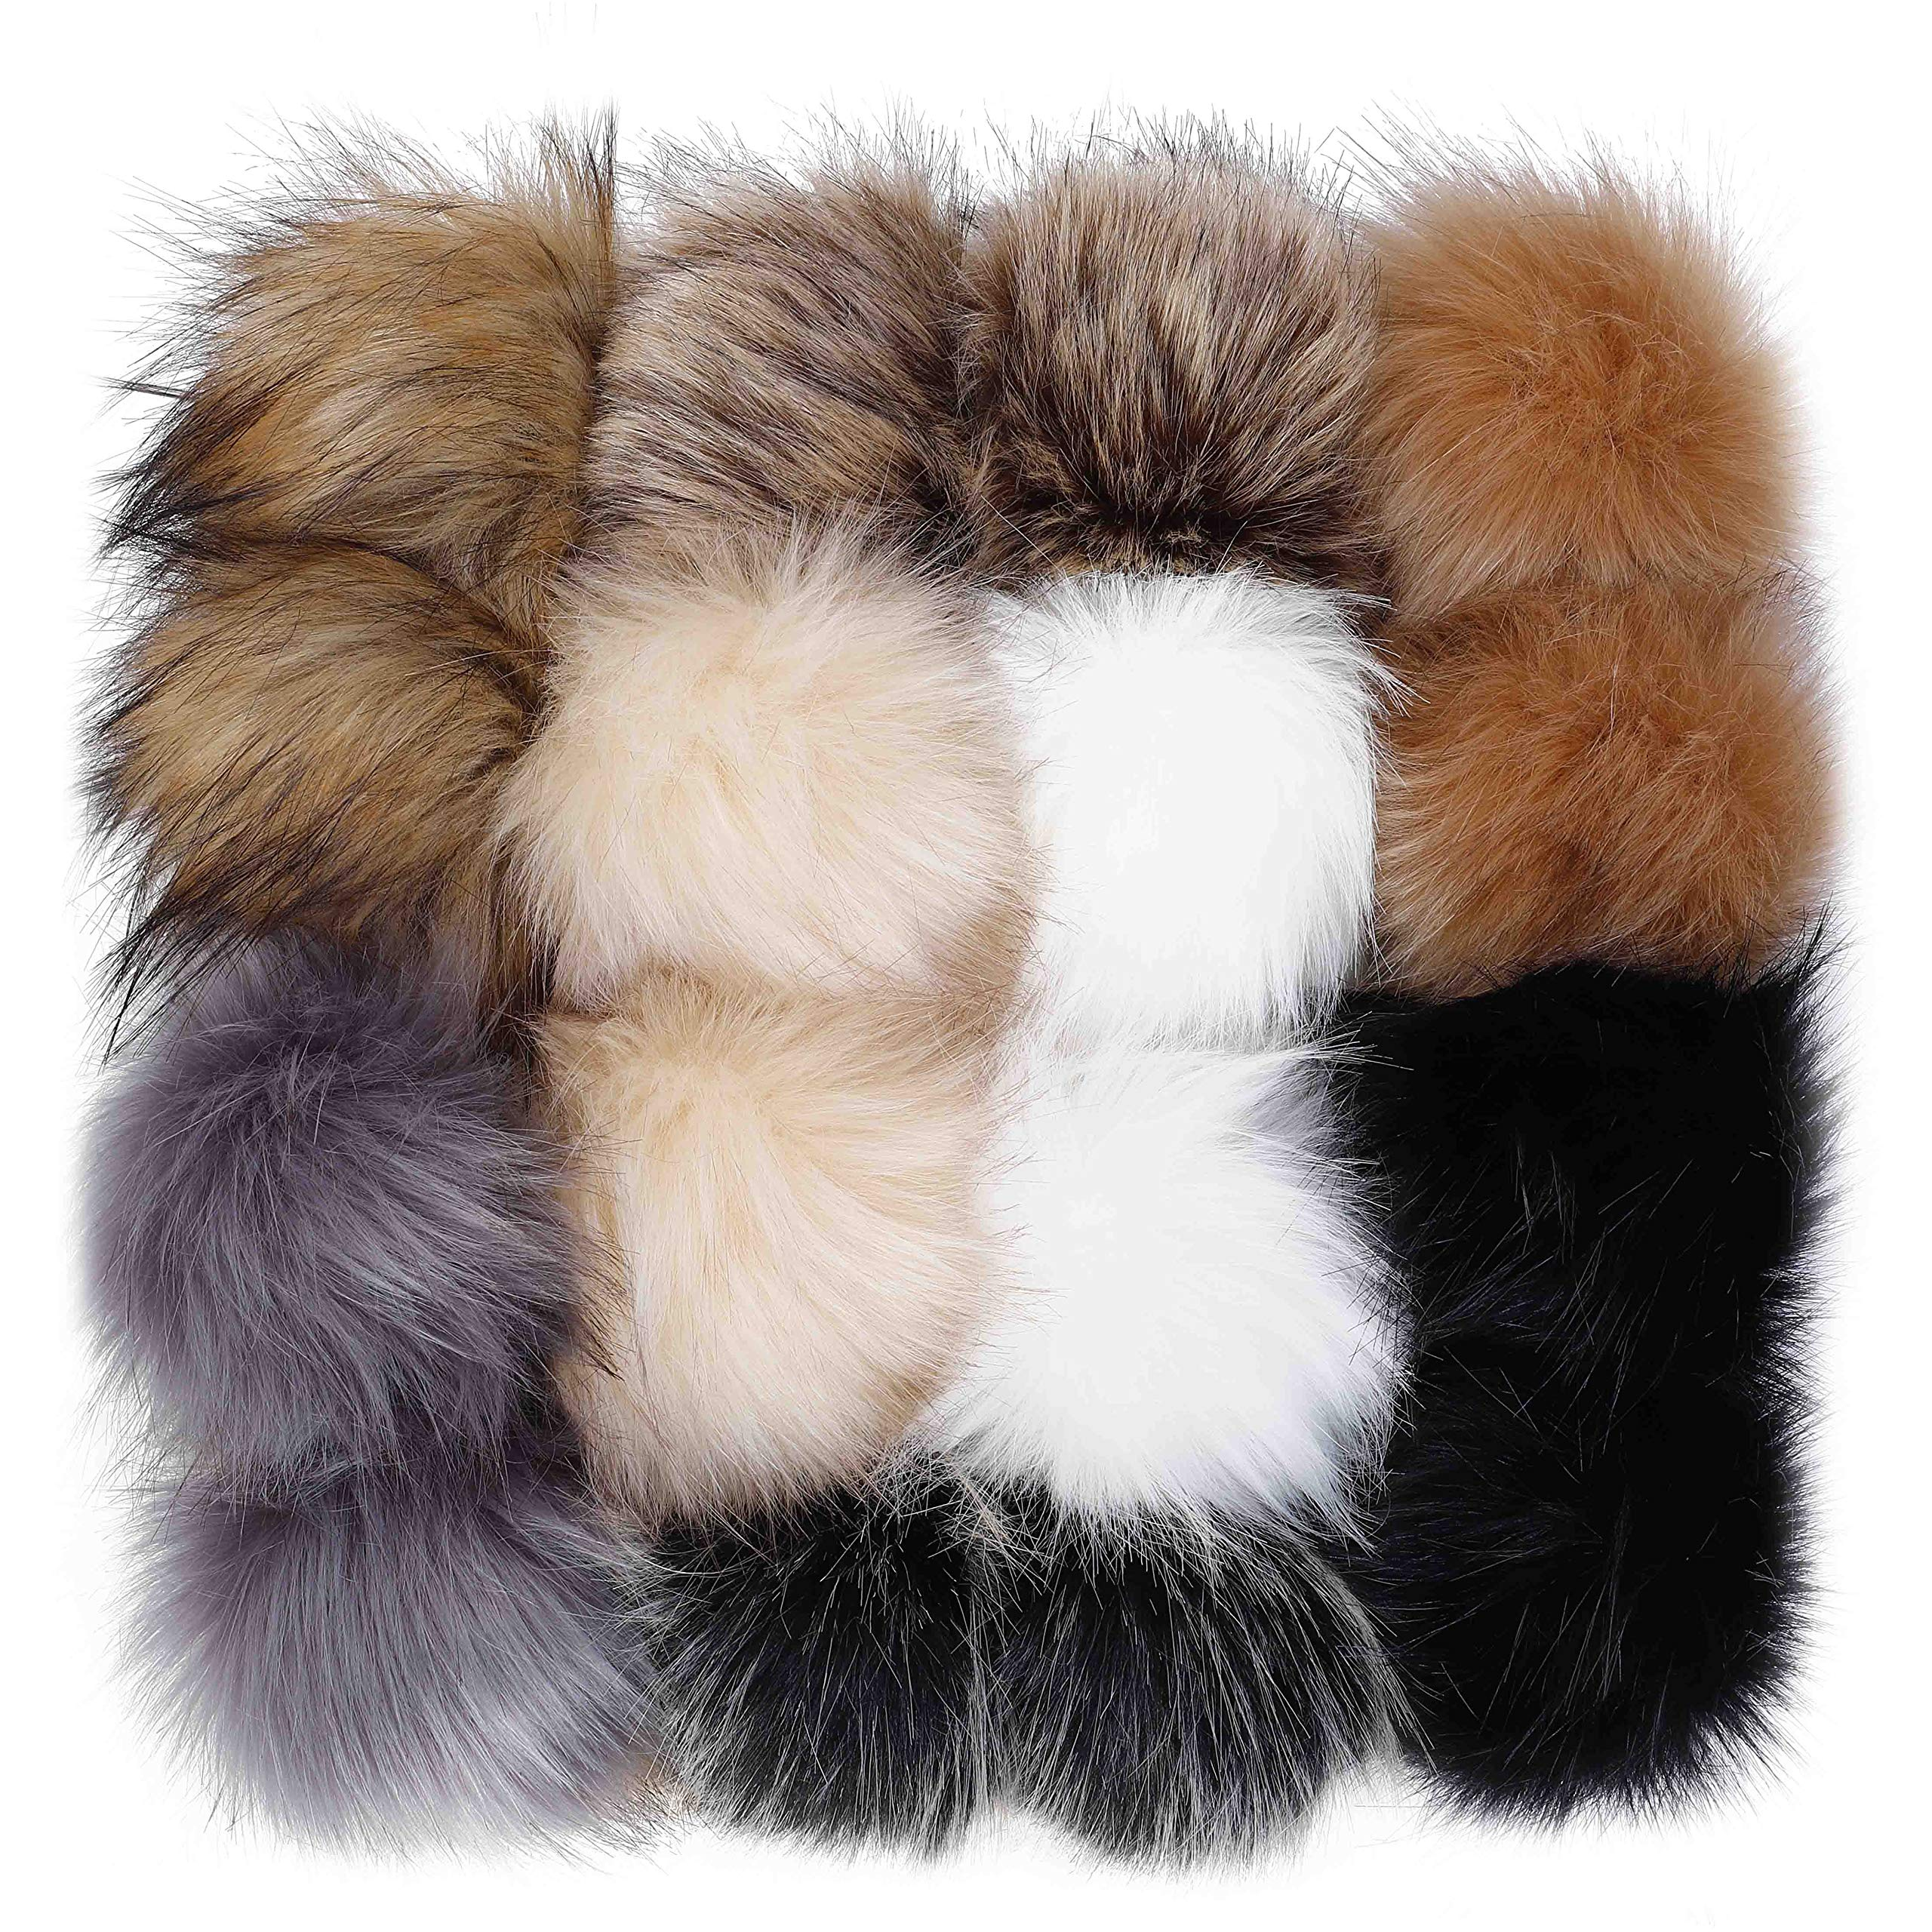 Fluffy Pom Pom DIY Faux Fox Fur Balls Soft 16PCS with Elastic Loop for Knitting Hat Scarves Bag Accessories